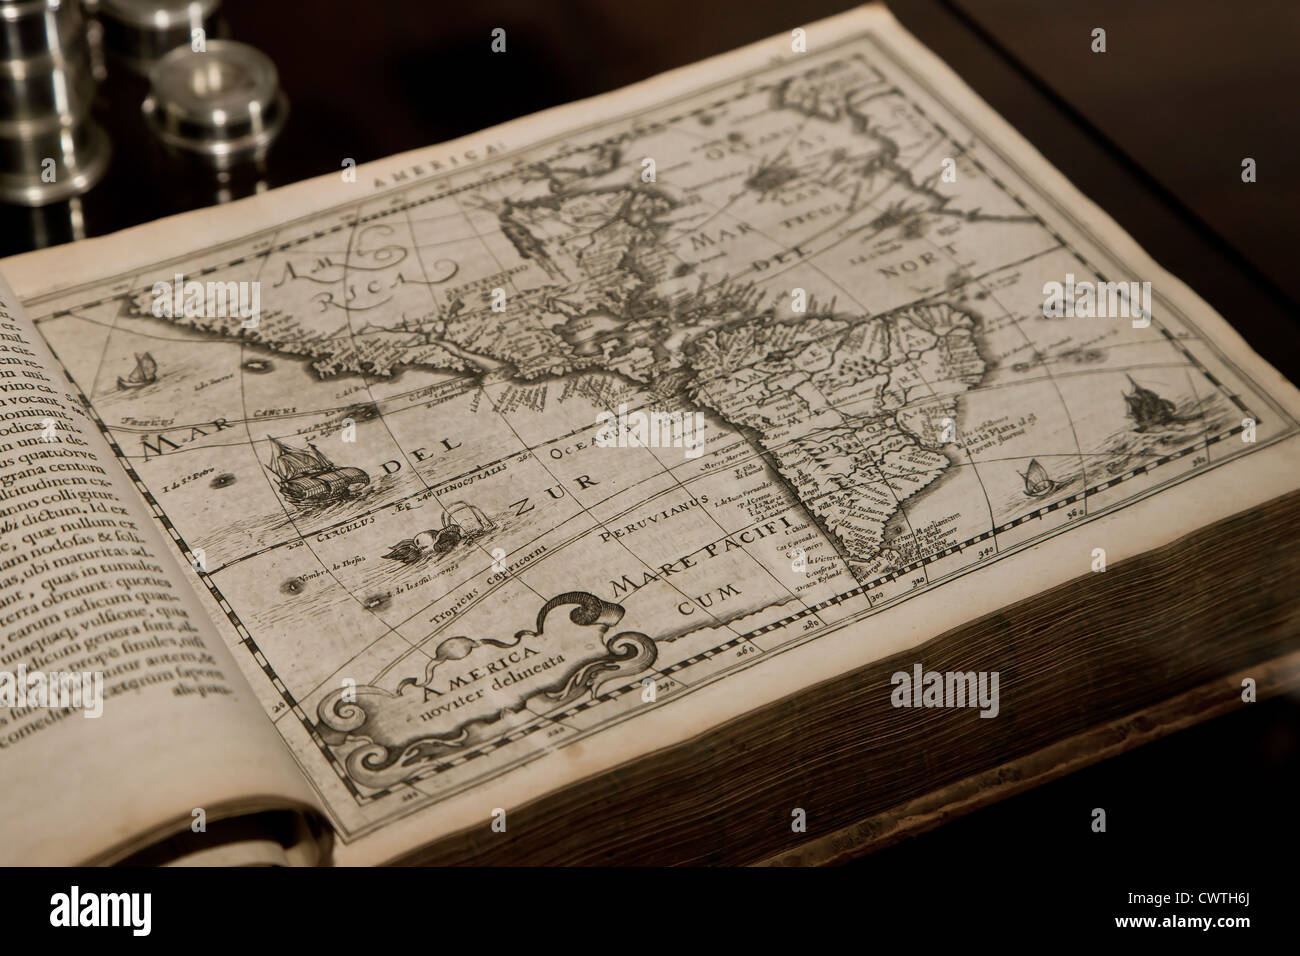 Old book with a distorted map of America - Stock Image